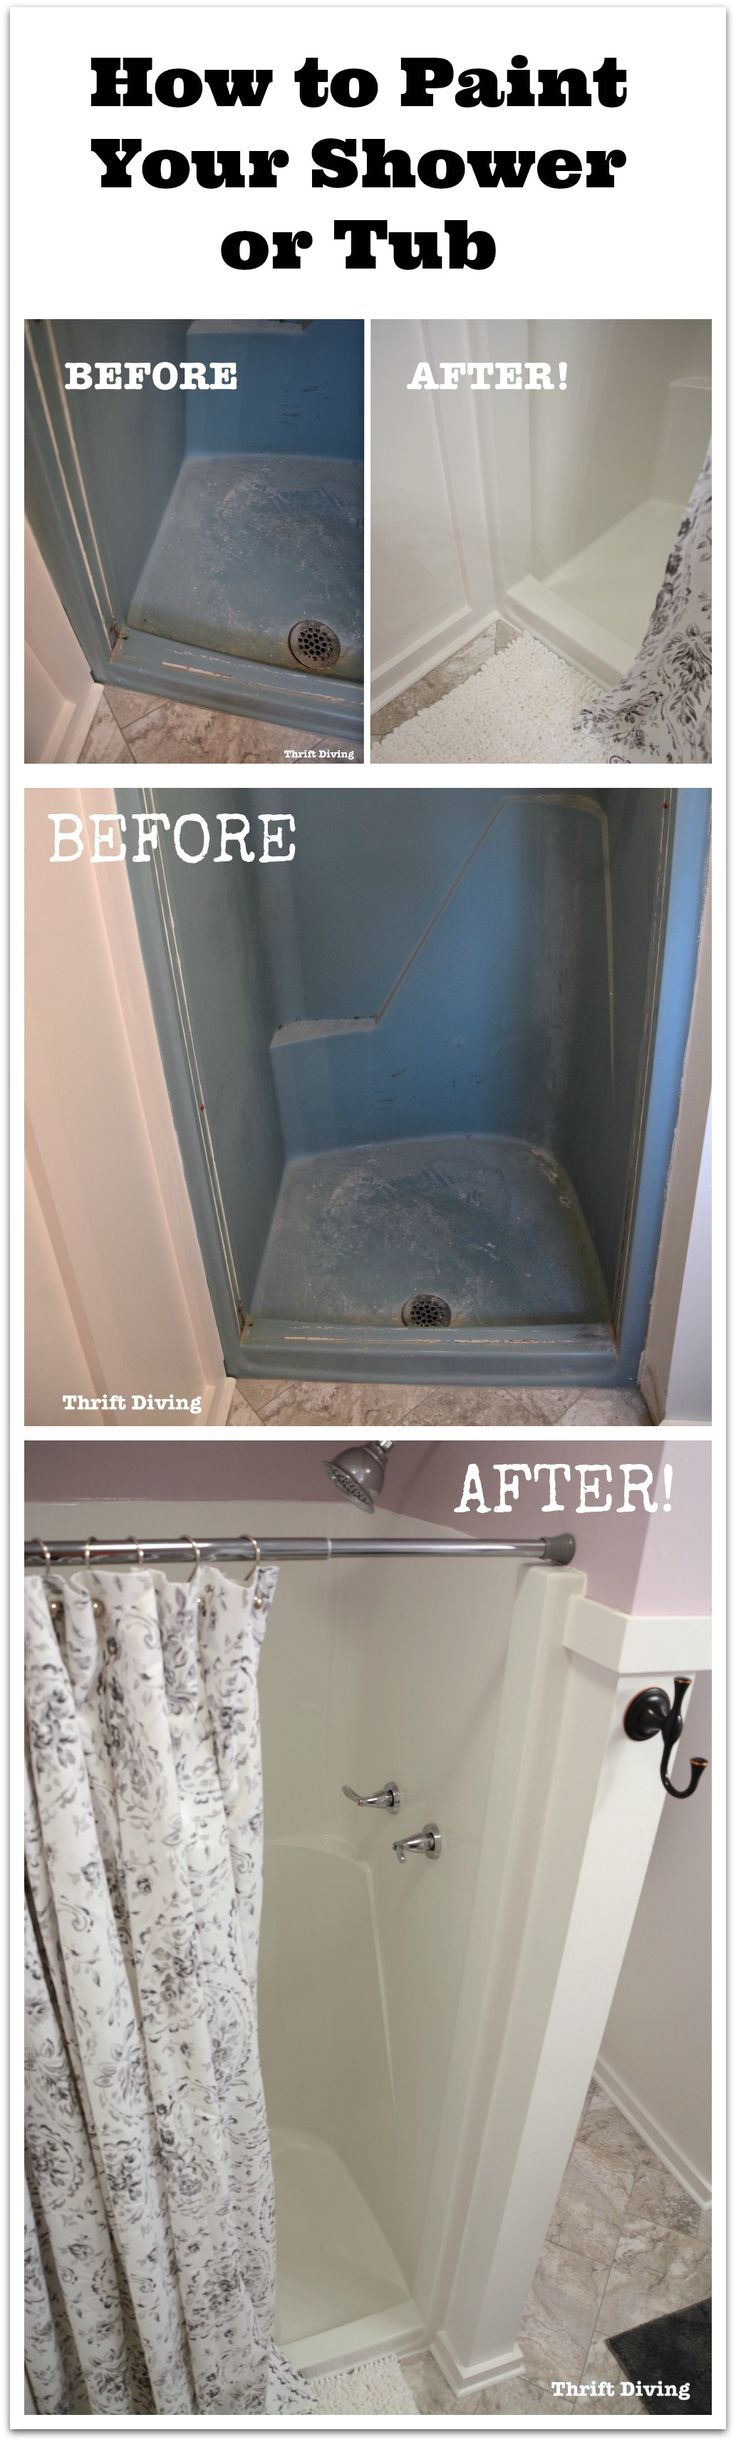 Cast iron tub refinishing milwaukee 300x186 cast iron tub refinishing - Diy Shower And Tub Refinishing How To Paint An Old Shower Thrift Diving